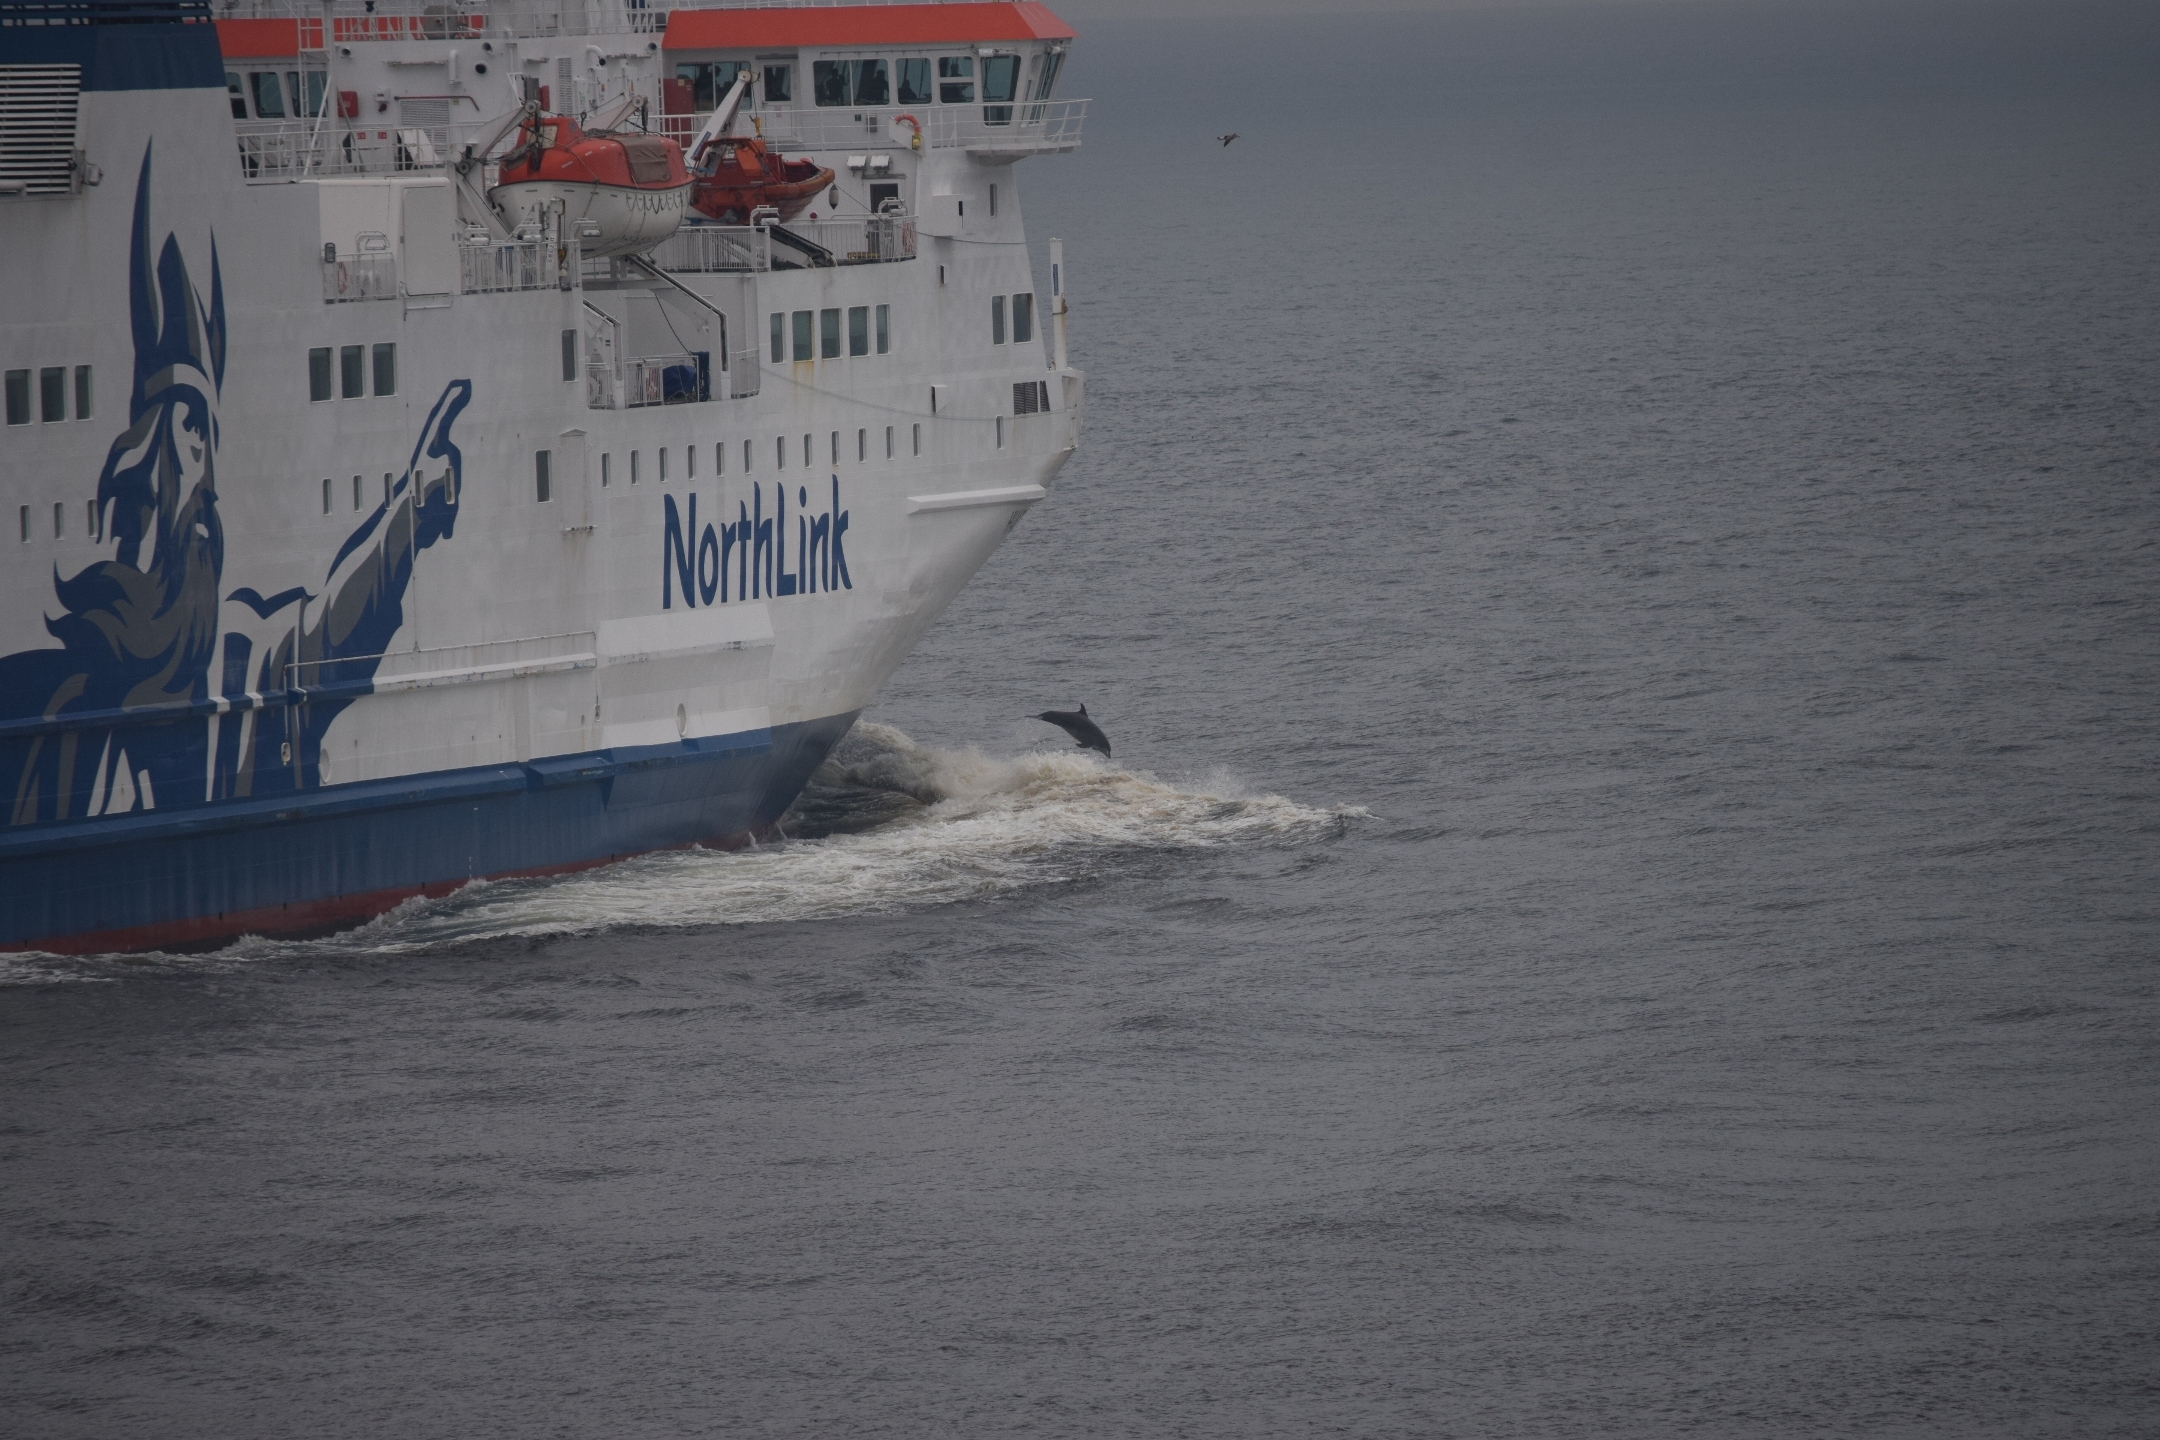 Dolphin bow-riding on a ferry